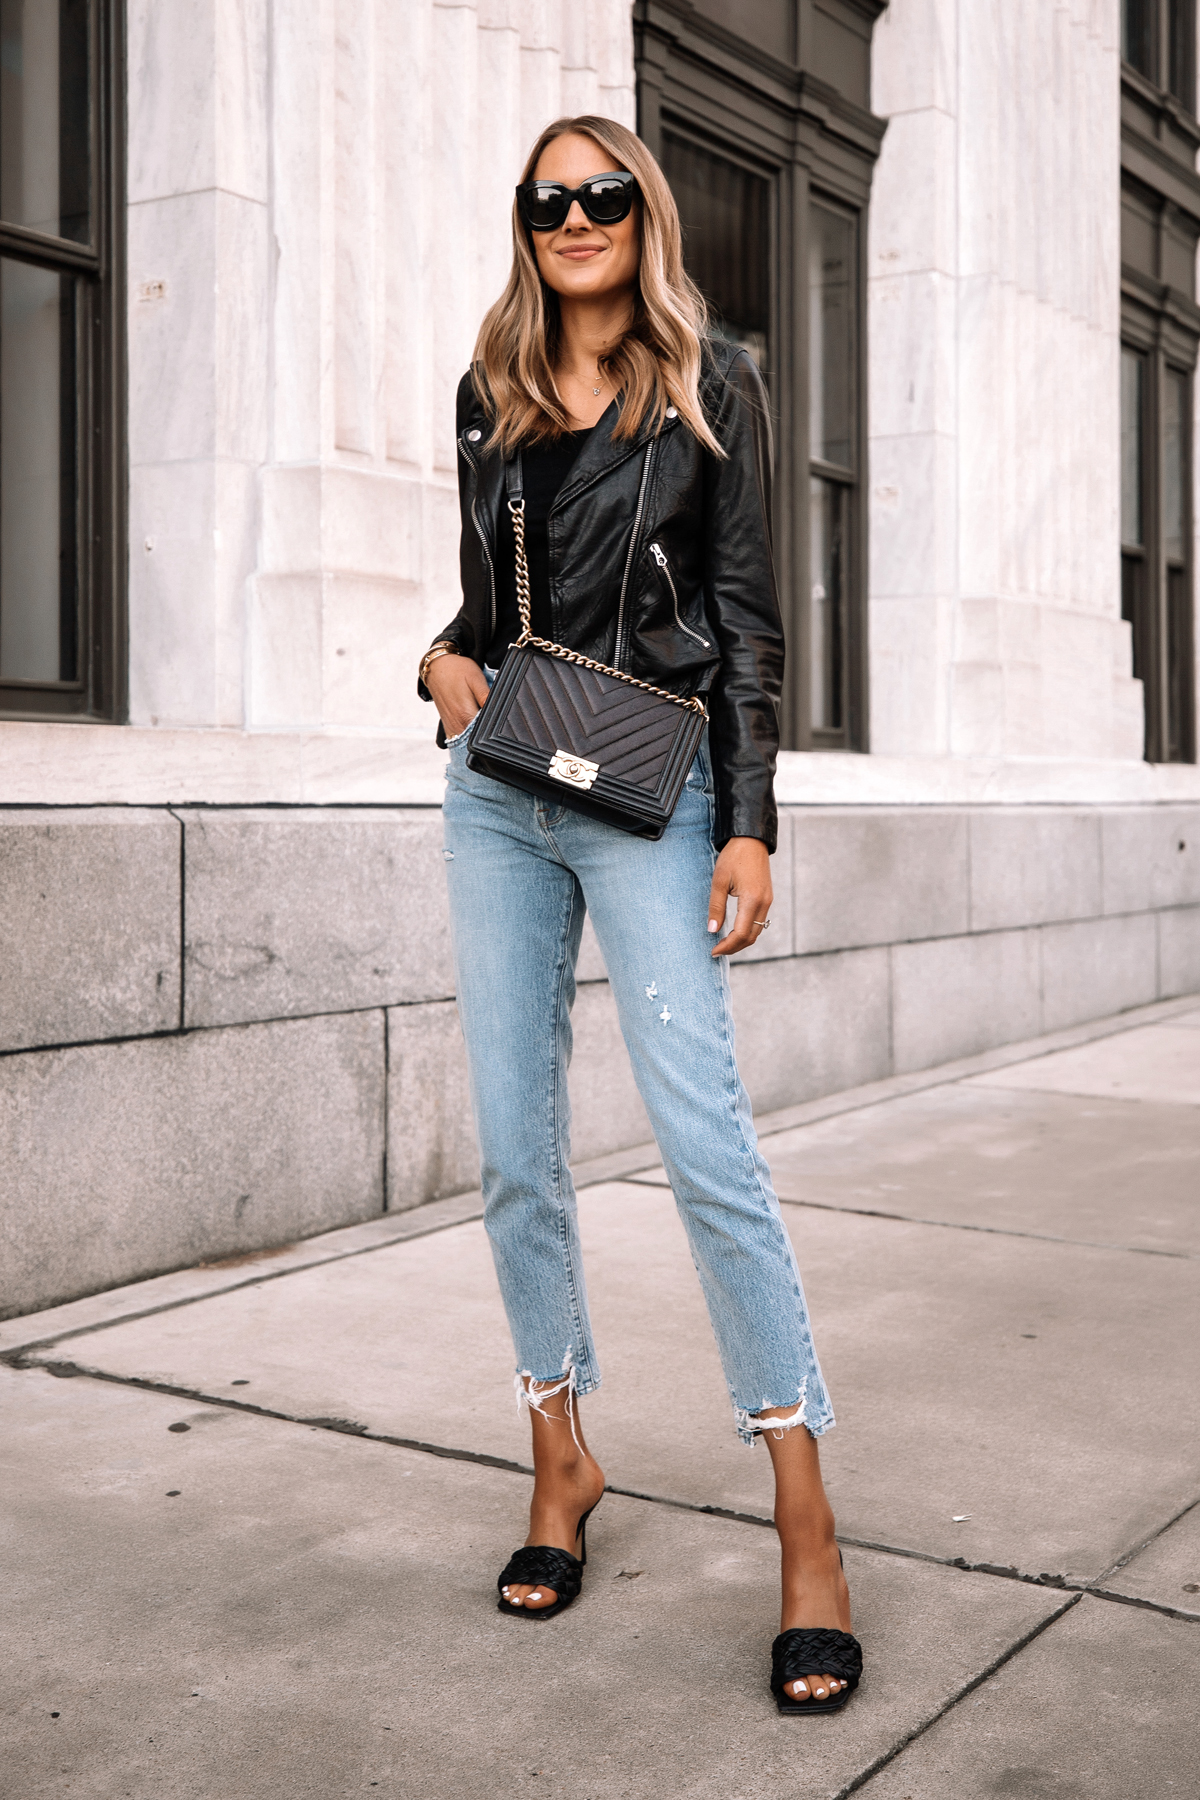 Fashion Jackson Wearing Madewell Black Leather Jacket Black Bodysuit Ripped Jeans Black Woven Heeled Sandals Chanel Black Boy Bag Street Style Outfit 2